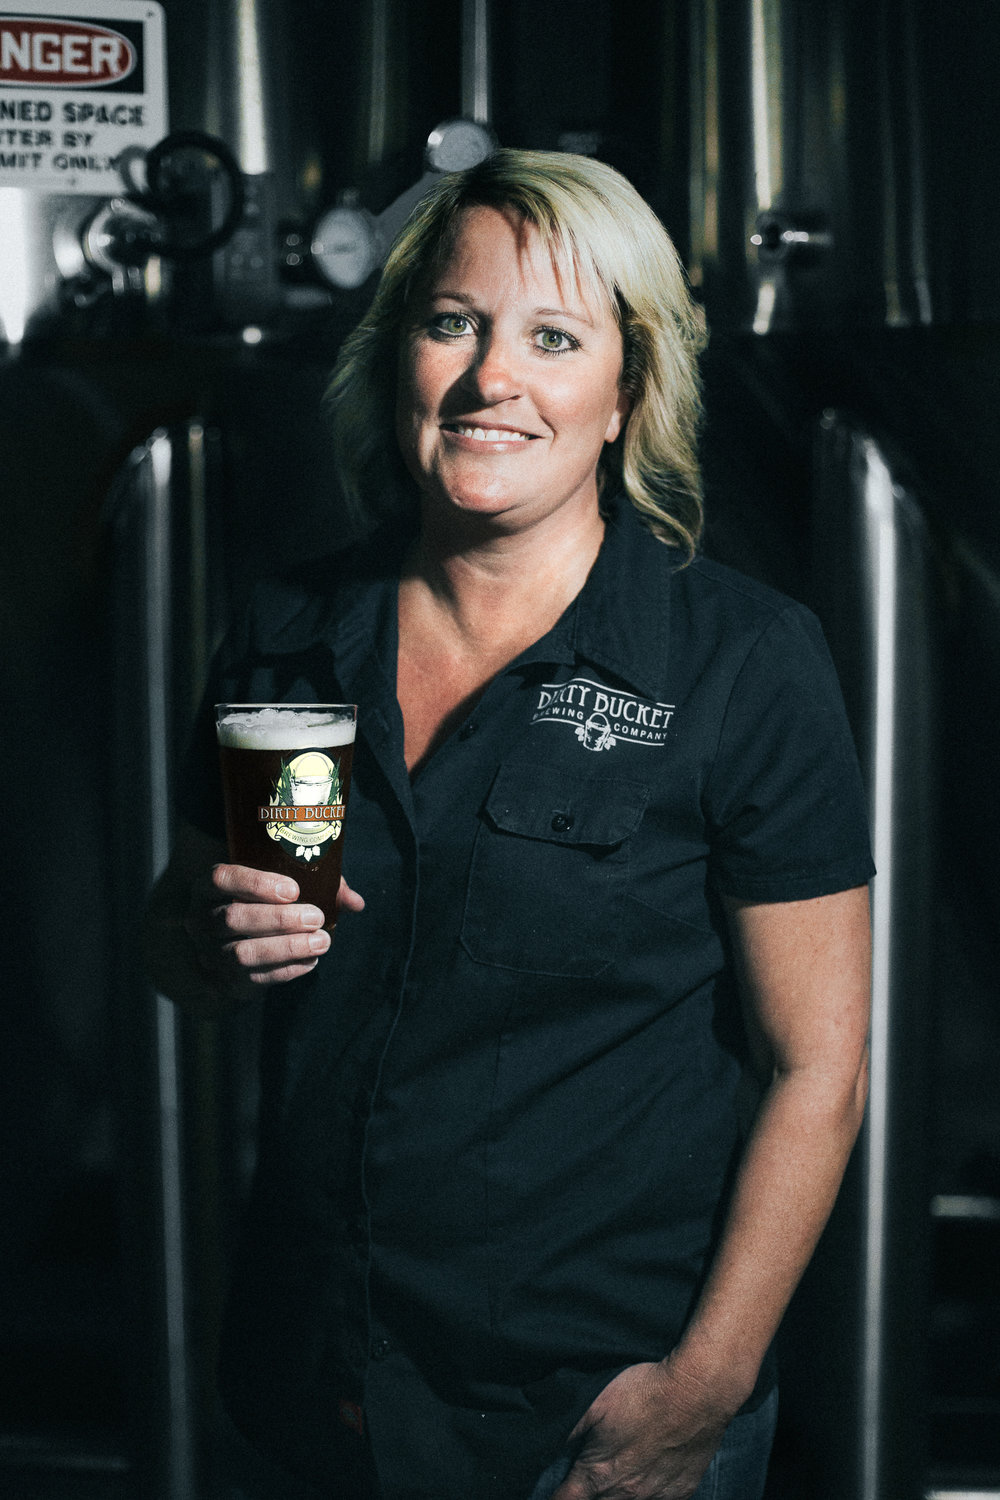 Amy - PRODUCTION MANAGER & AWARD WINNING BREWERFrom: Witchita Falls, TXFavorite DBB Beer: Bedraggled Irish Red AleMy Bucket List:1. Travel and see Spain2. Hike along the PCT